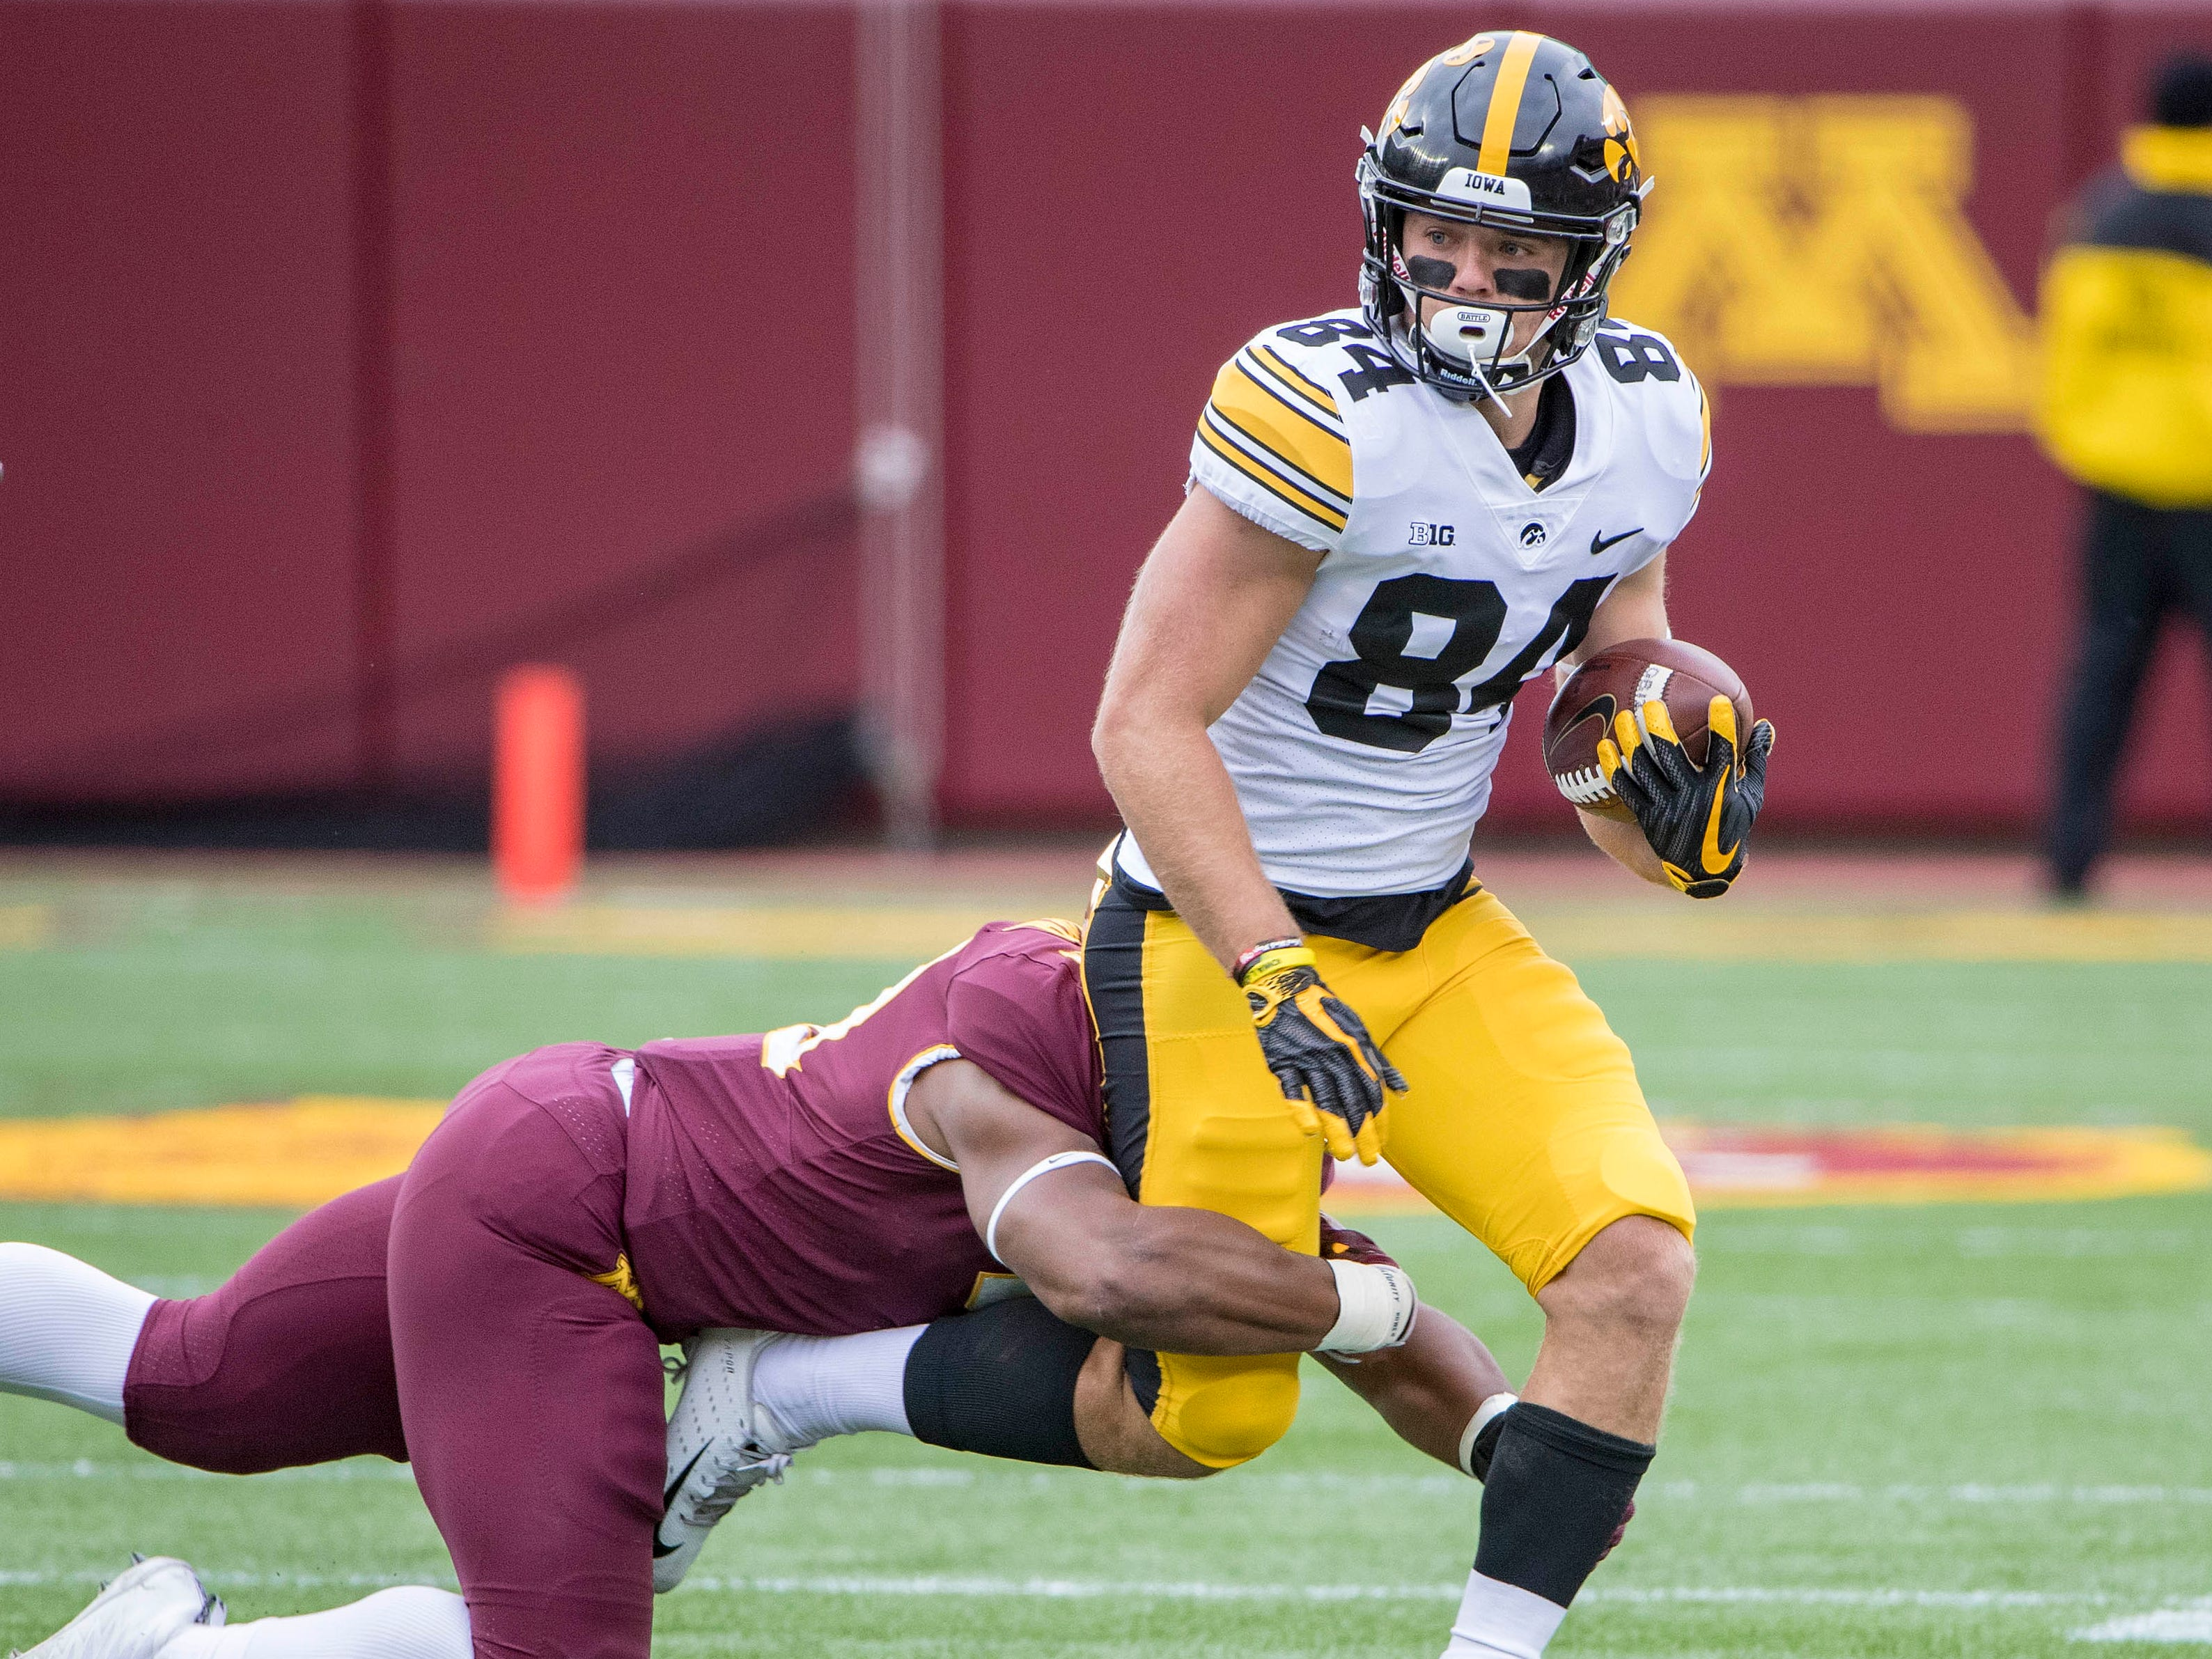 Oct 6, 2018; Minneapolis, MN, USA; Iowa Hawkeyes wide receiver Nick Easley (84) runs the ball after making a catch against Minnesota Golden Gophers linebacker Thomas Barber (41) in the first quarter at TCF Bank Stadium. Mandatory Credit: Jesse Johnson-USA TODAY Sports